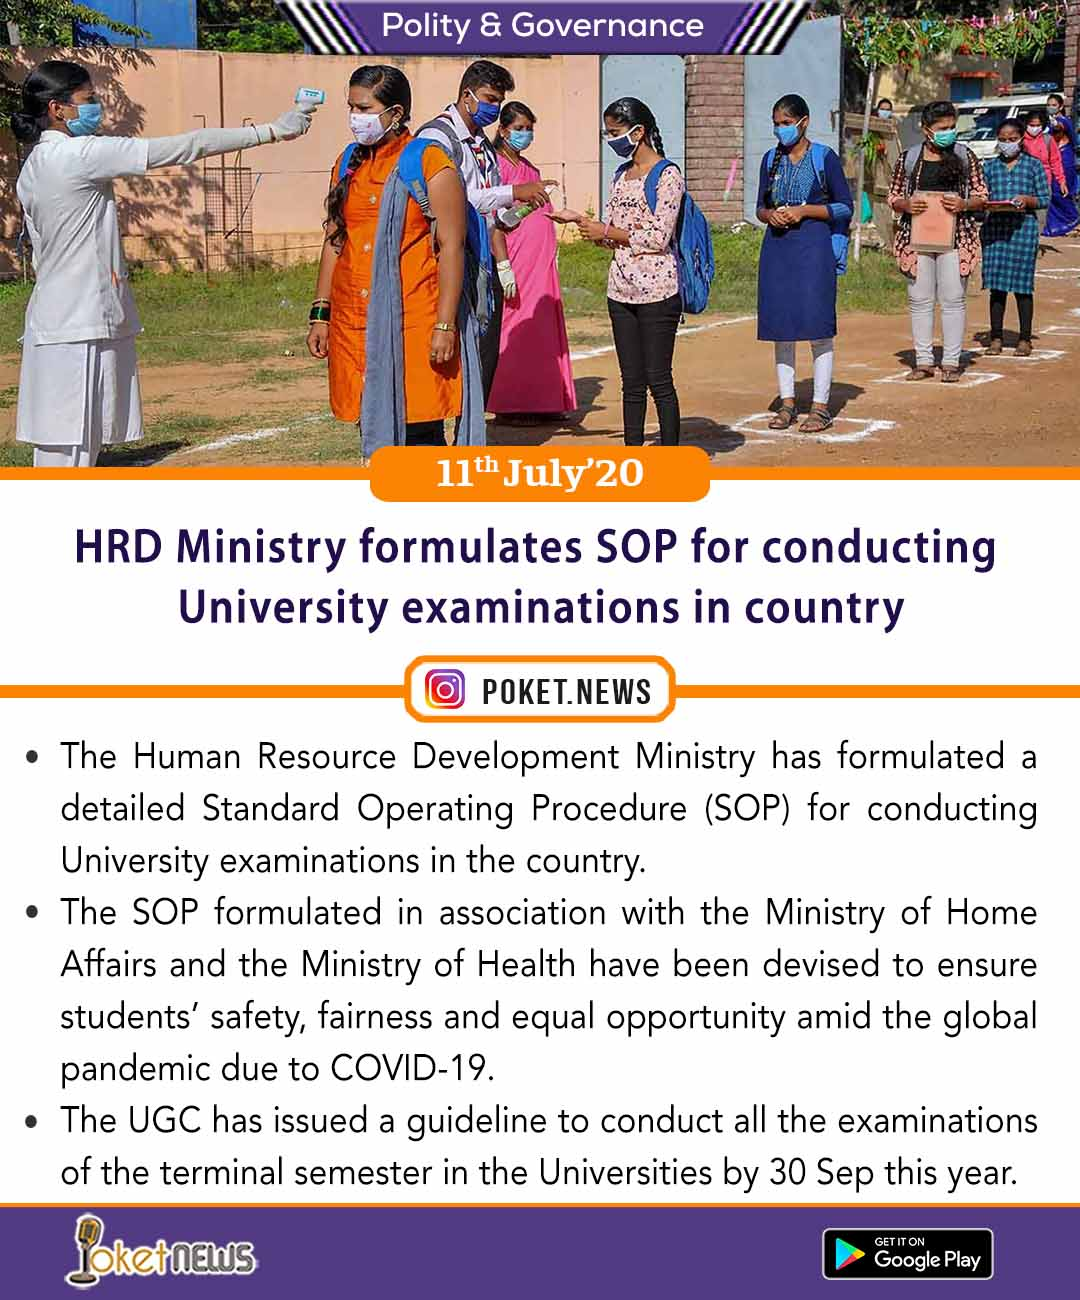 HRD Ministry formulates SOP for conducting University examinations in country